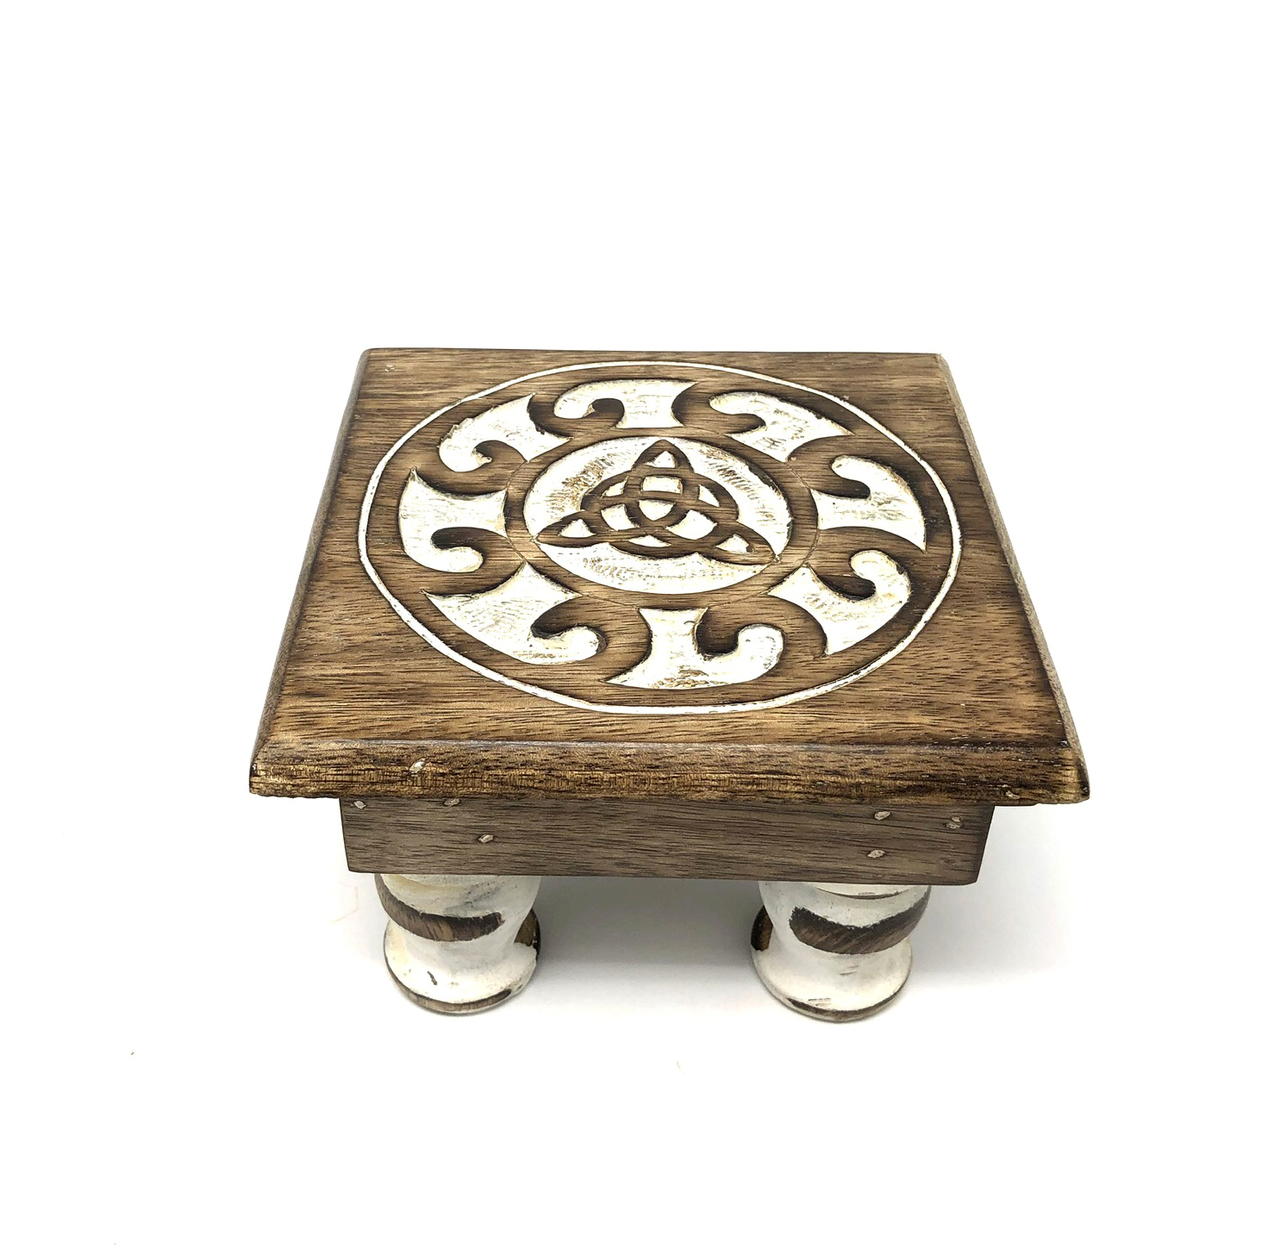 Wood Altar Table Triquetra Image